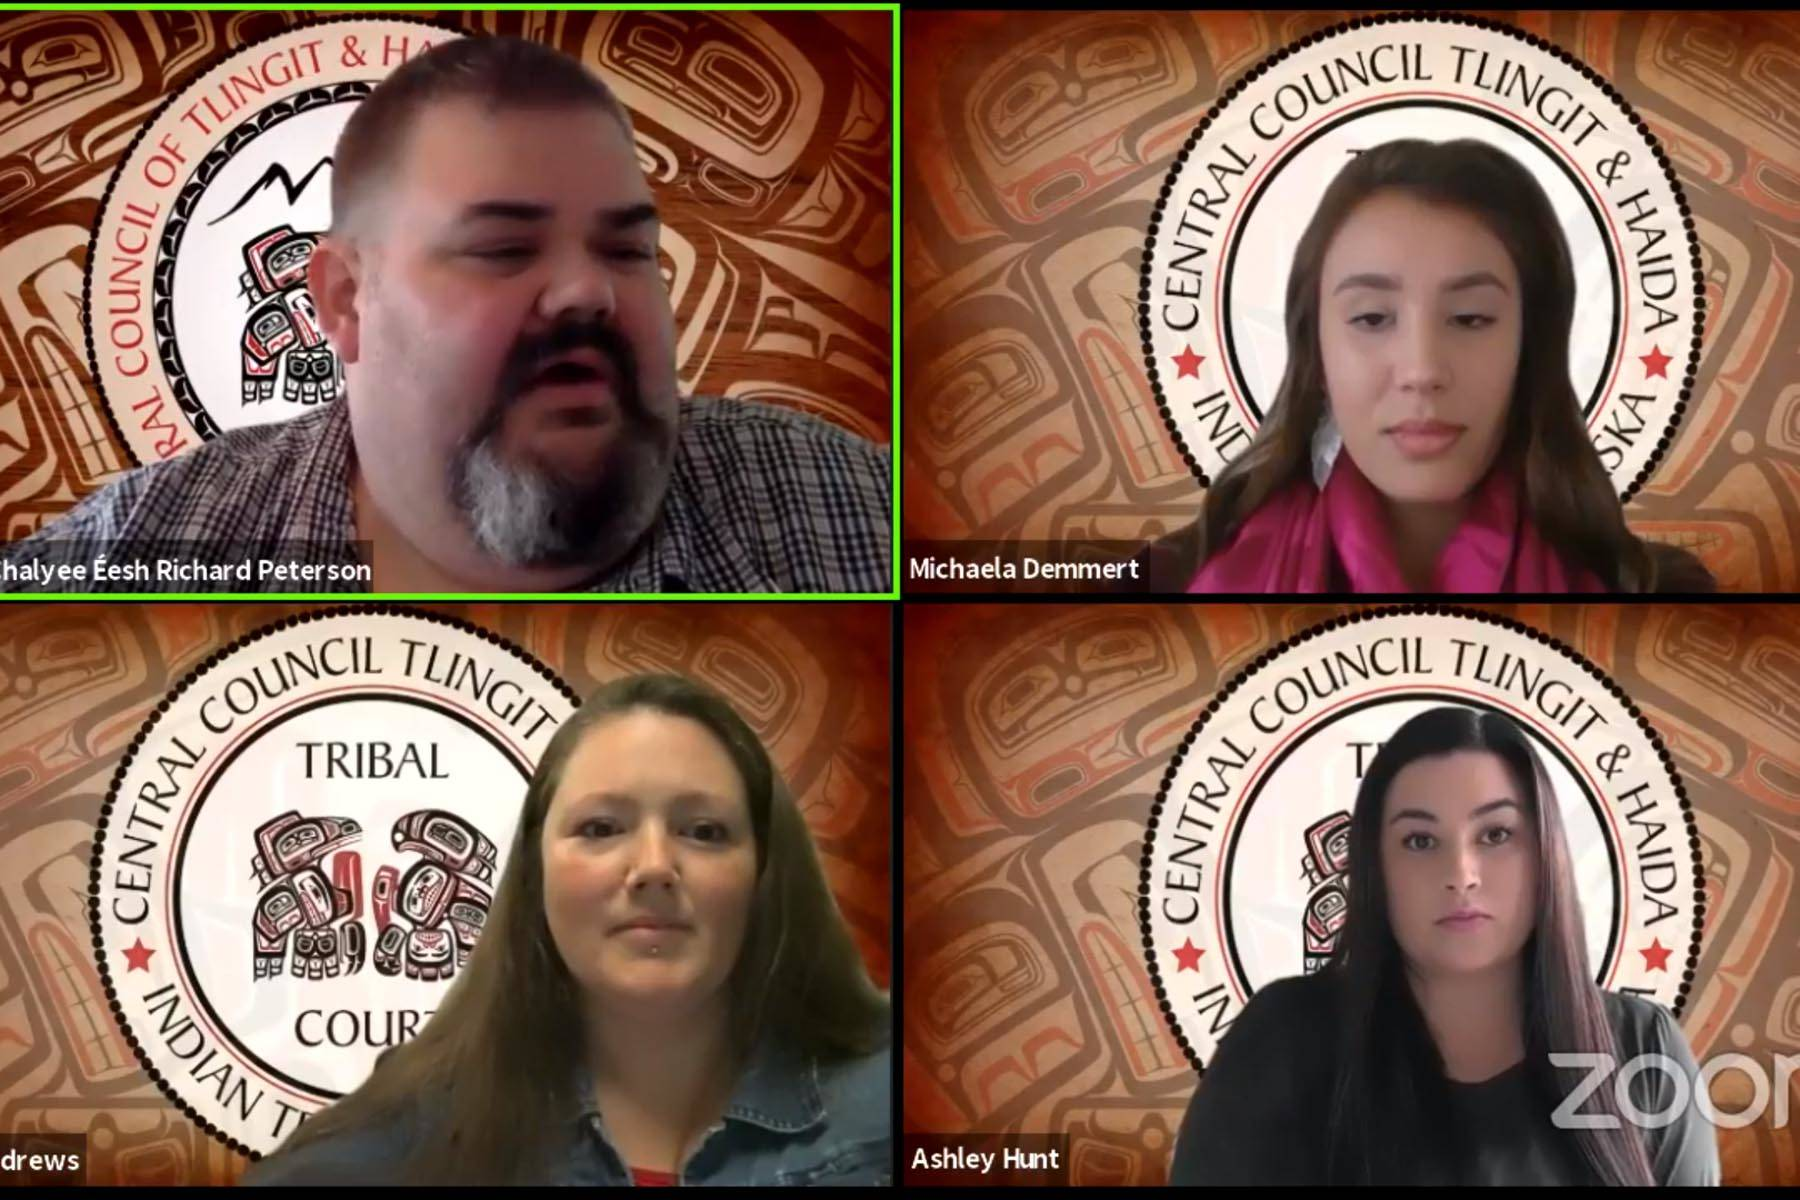 Screenshot                                Members of Tlingit and Haida's lunchtime chat discuss the tribal courts system over web conference on June 25.